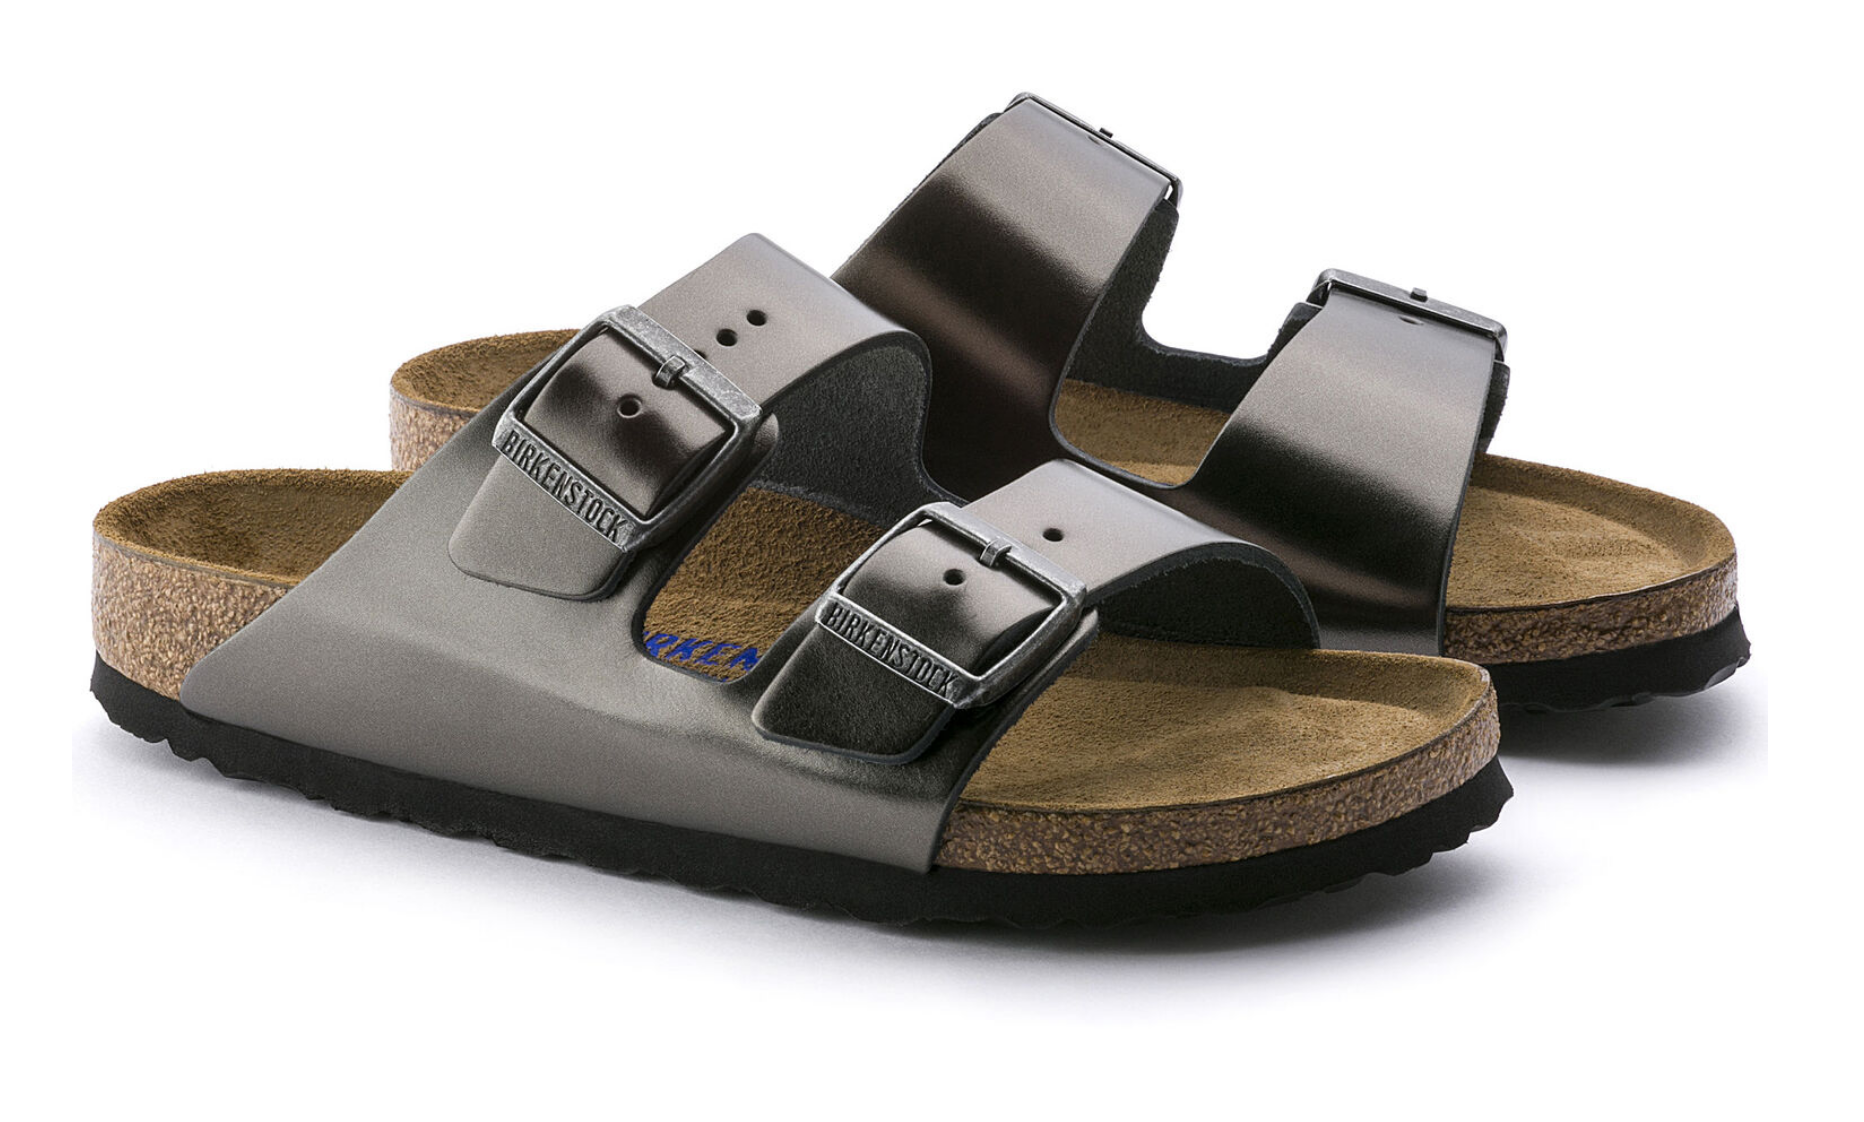 Arizona Soft Footbed in Metallic Anthracite-4